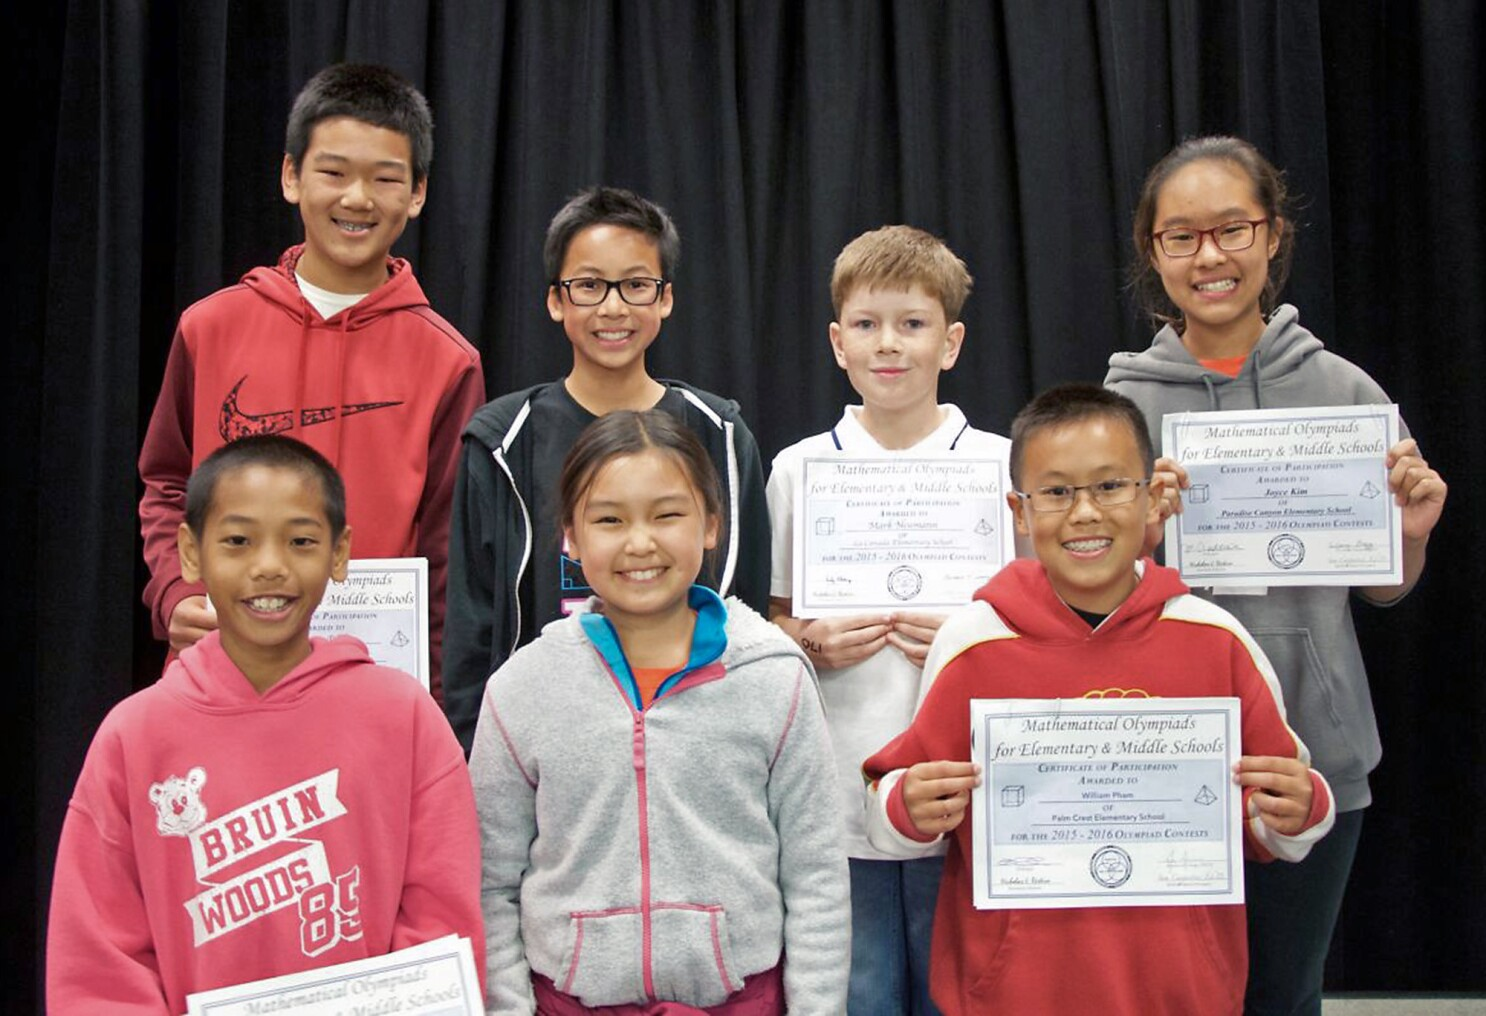 La Cañada Unified 'Mathletes' honored at first-ever Math